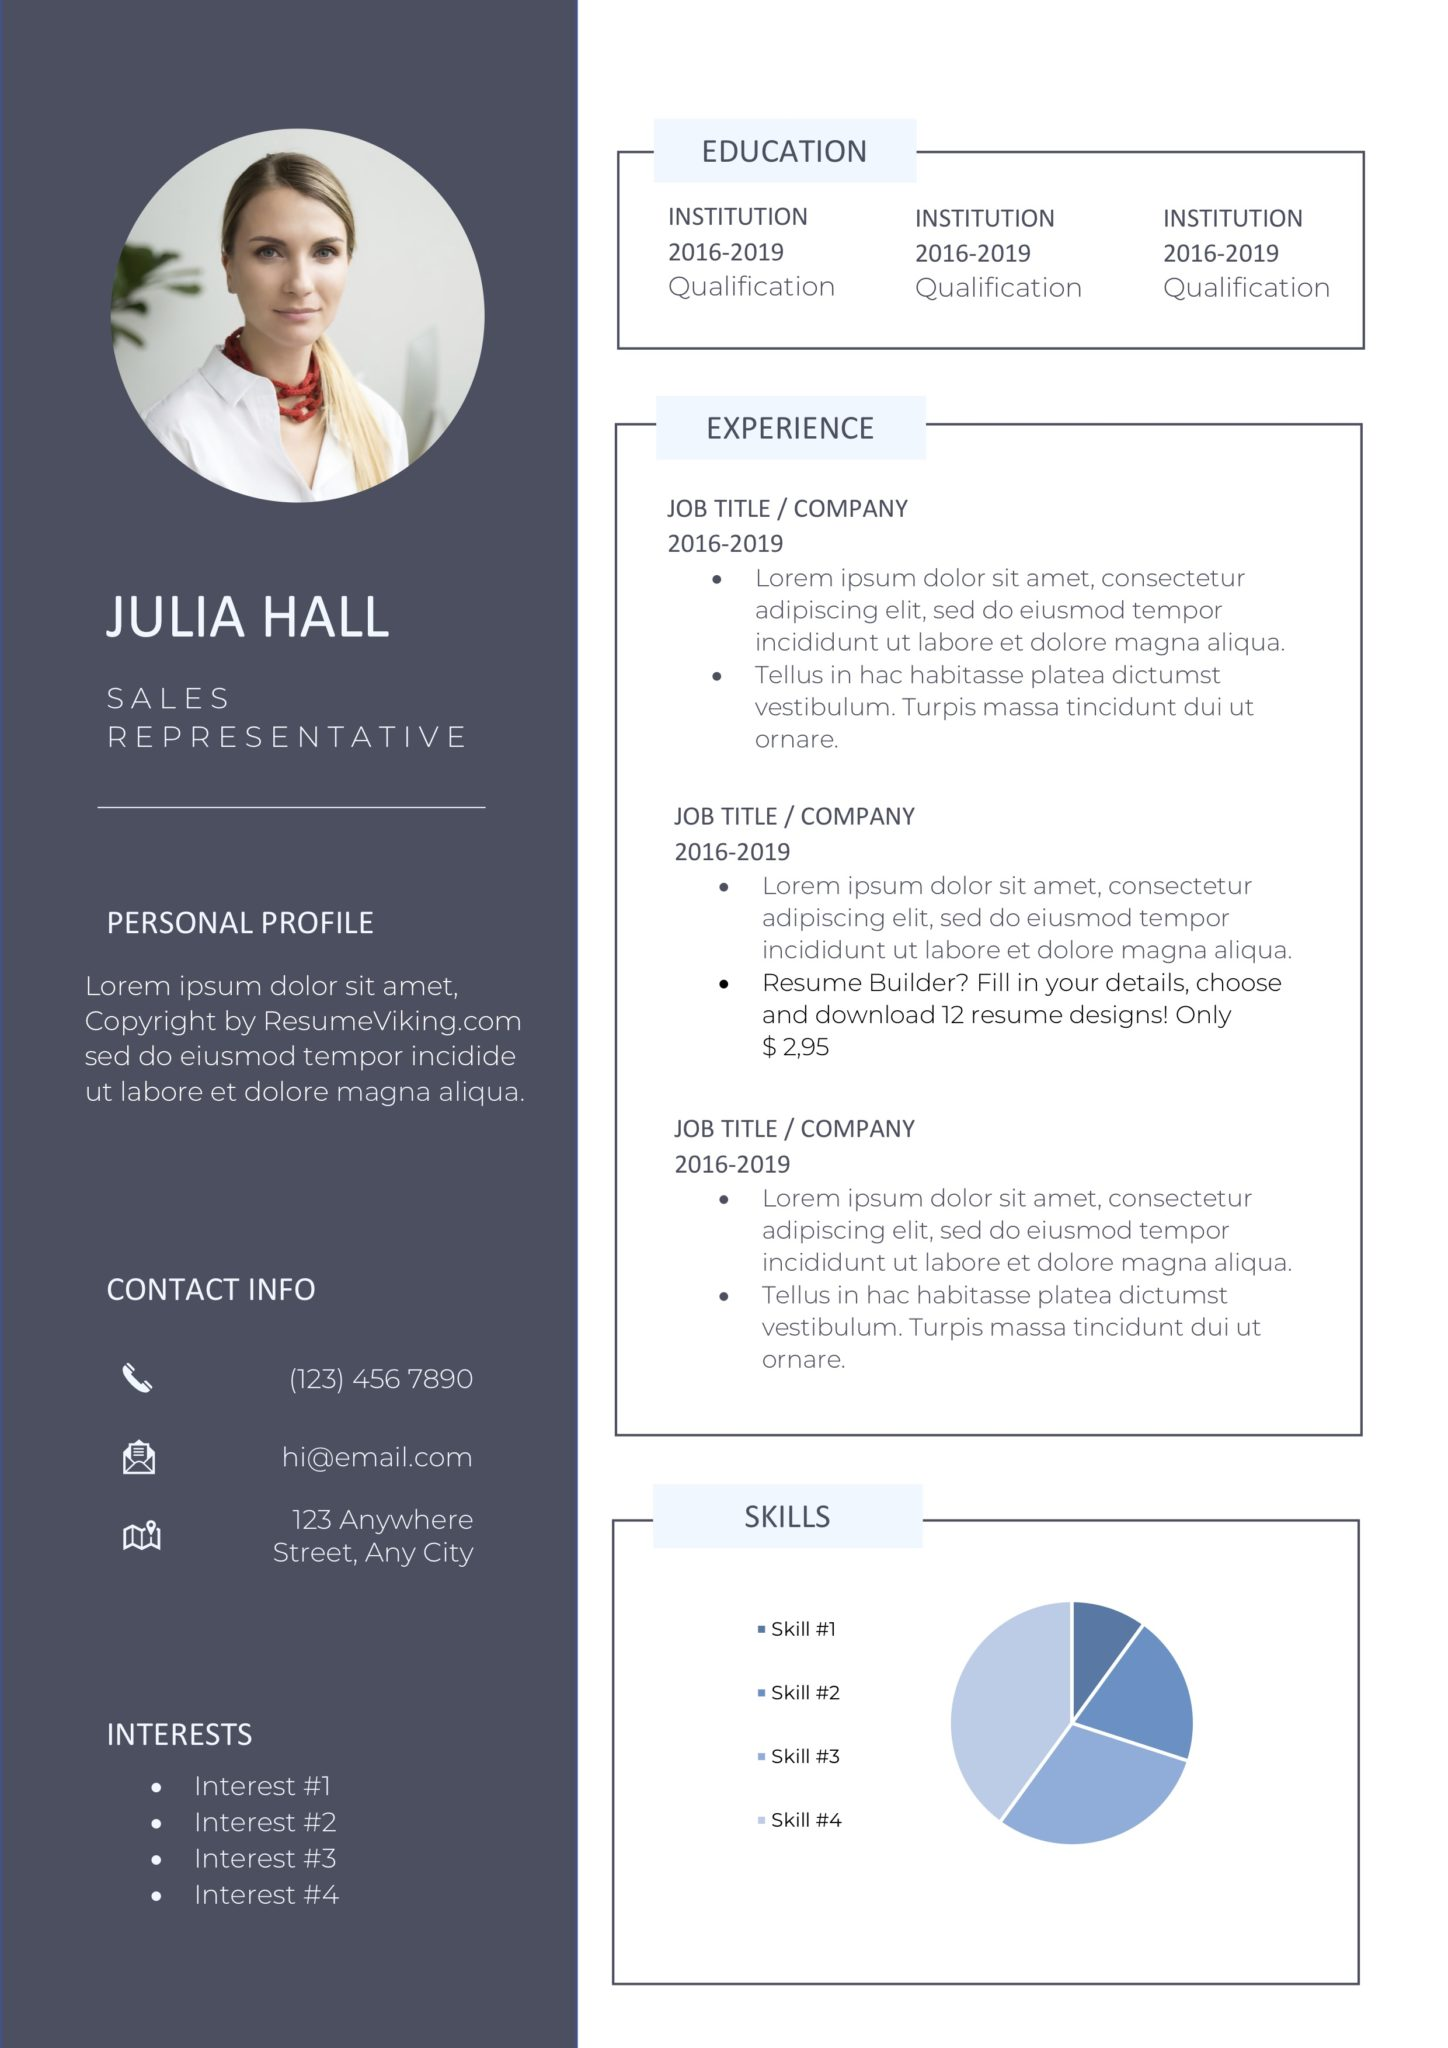 free word resume templates in ms template resumeviking scaled disaster recovery sample Resume Free Resume Templates Word 2020